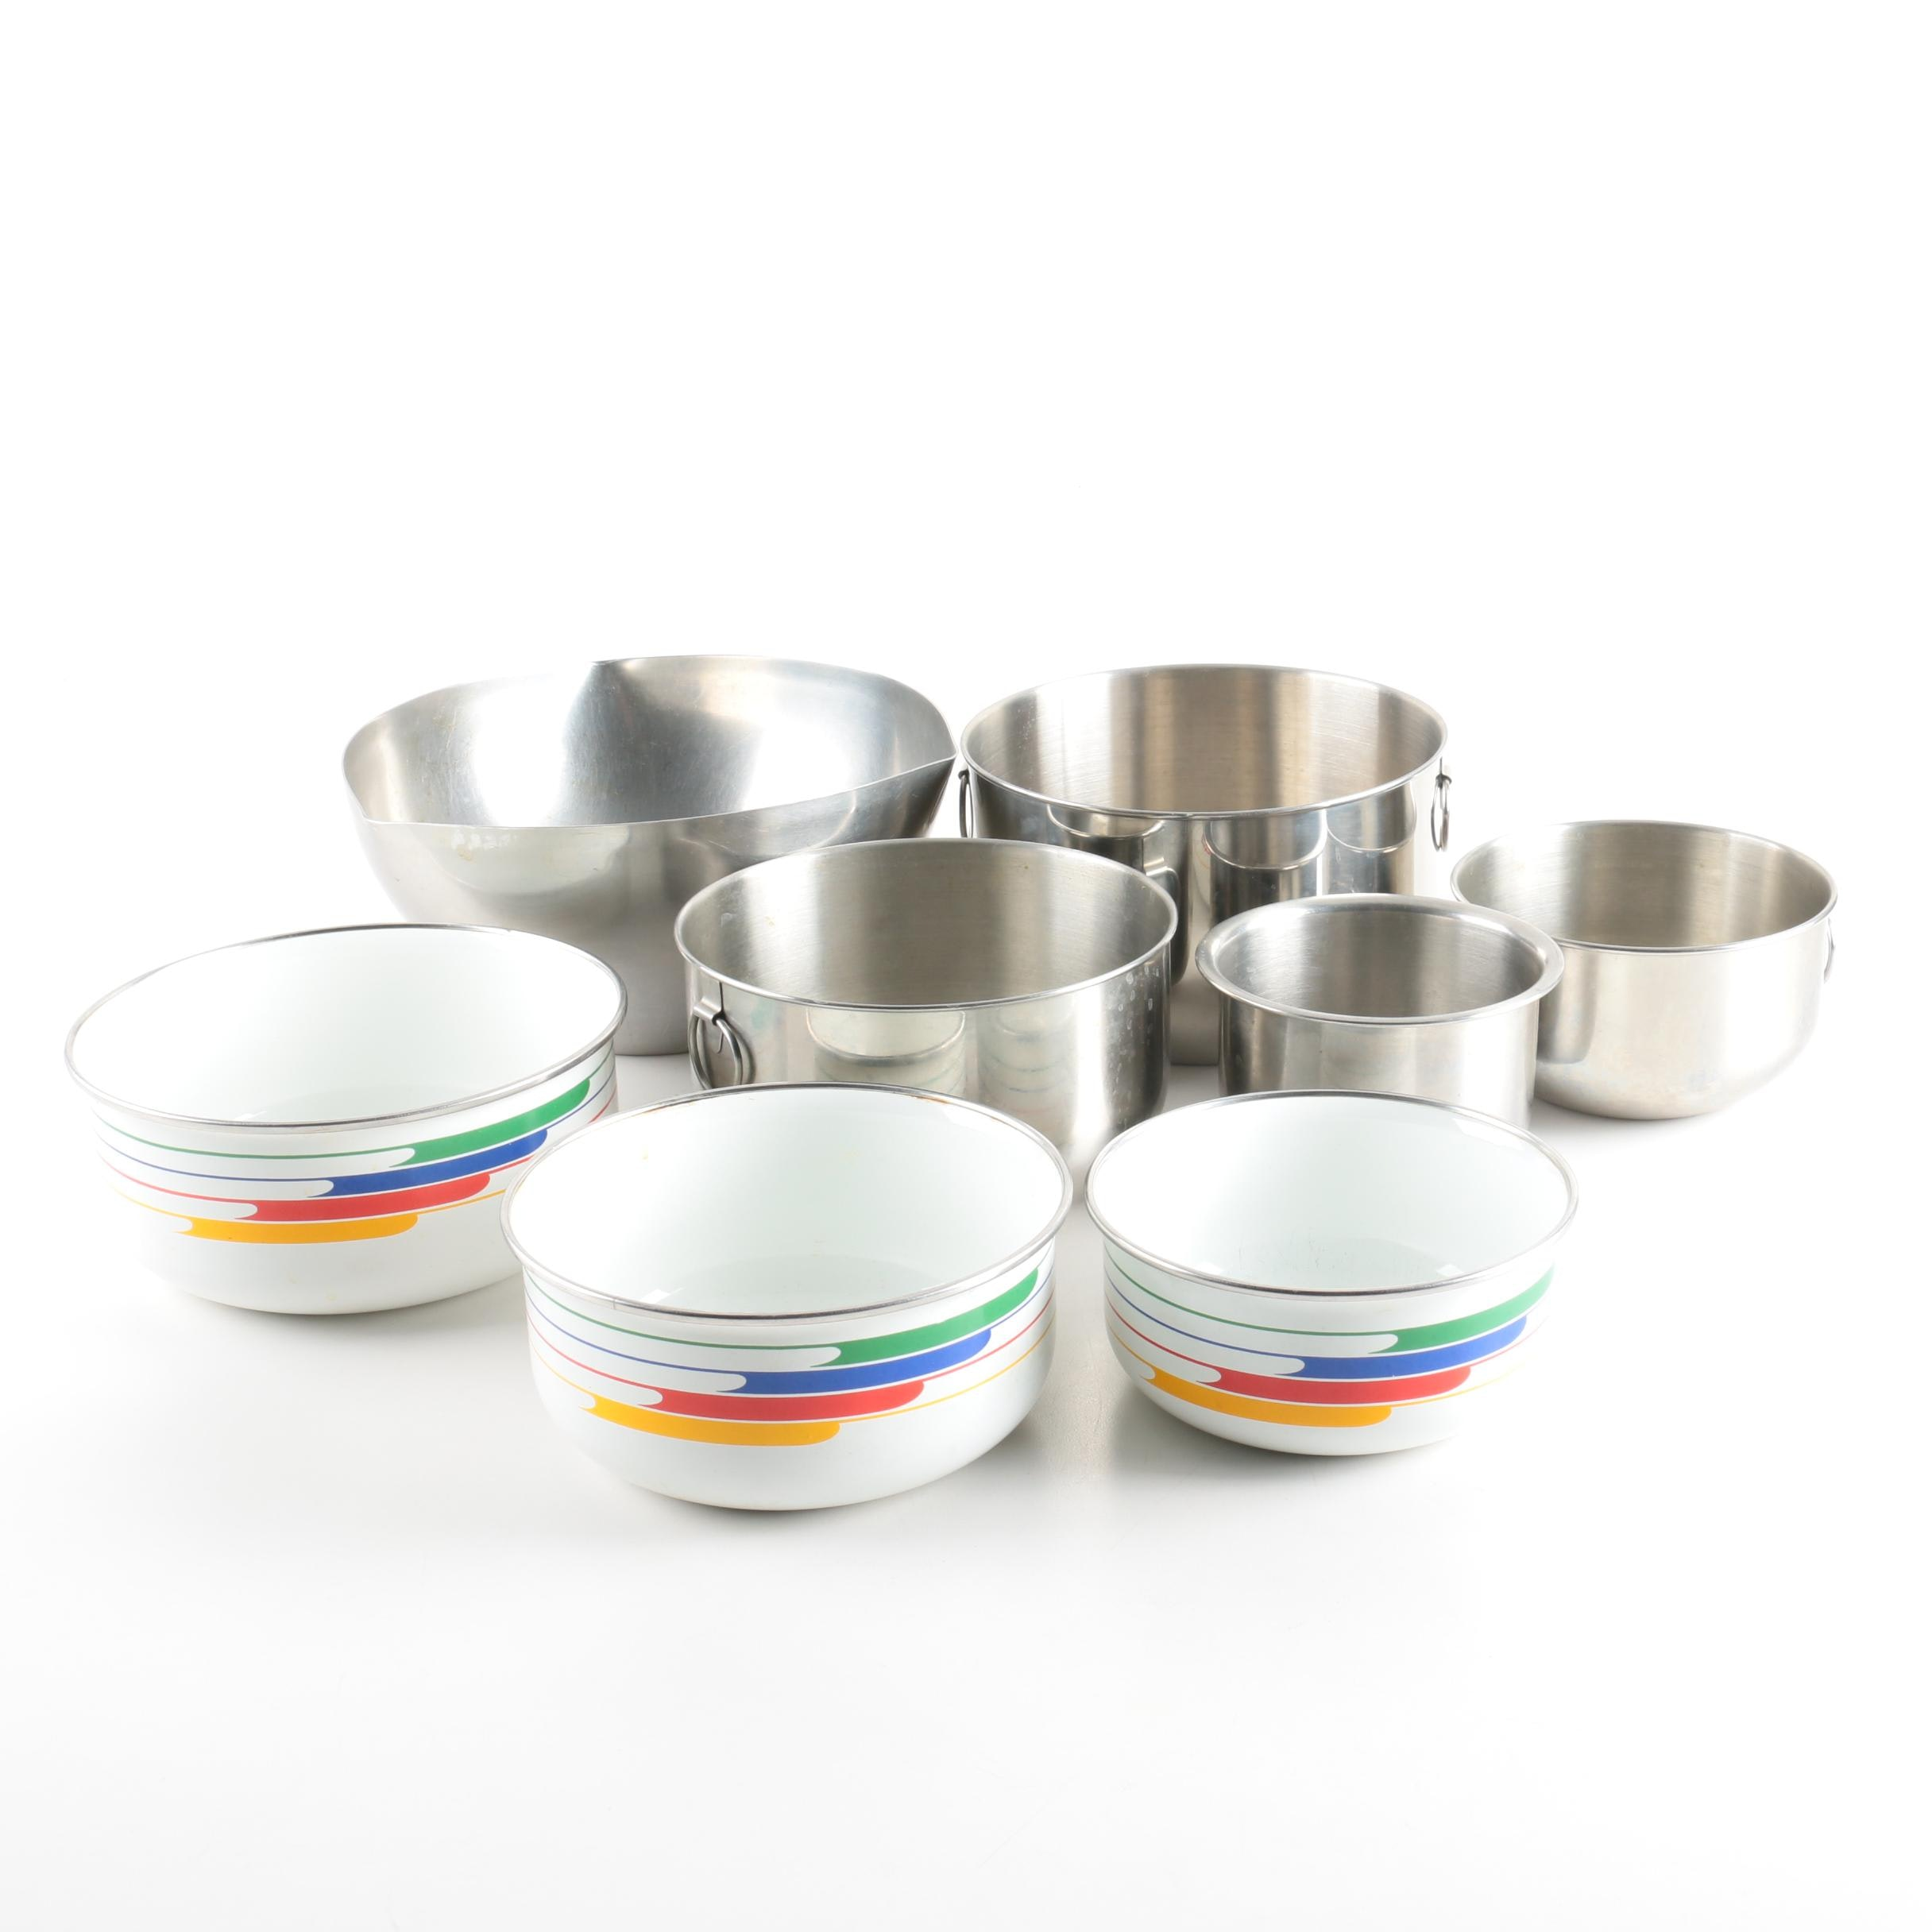 Stainless Steel and Enamelware Mixing Bowls by Various Makers